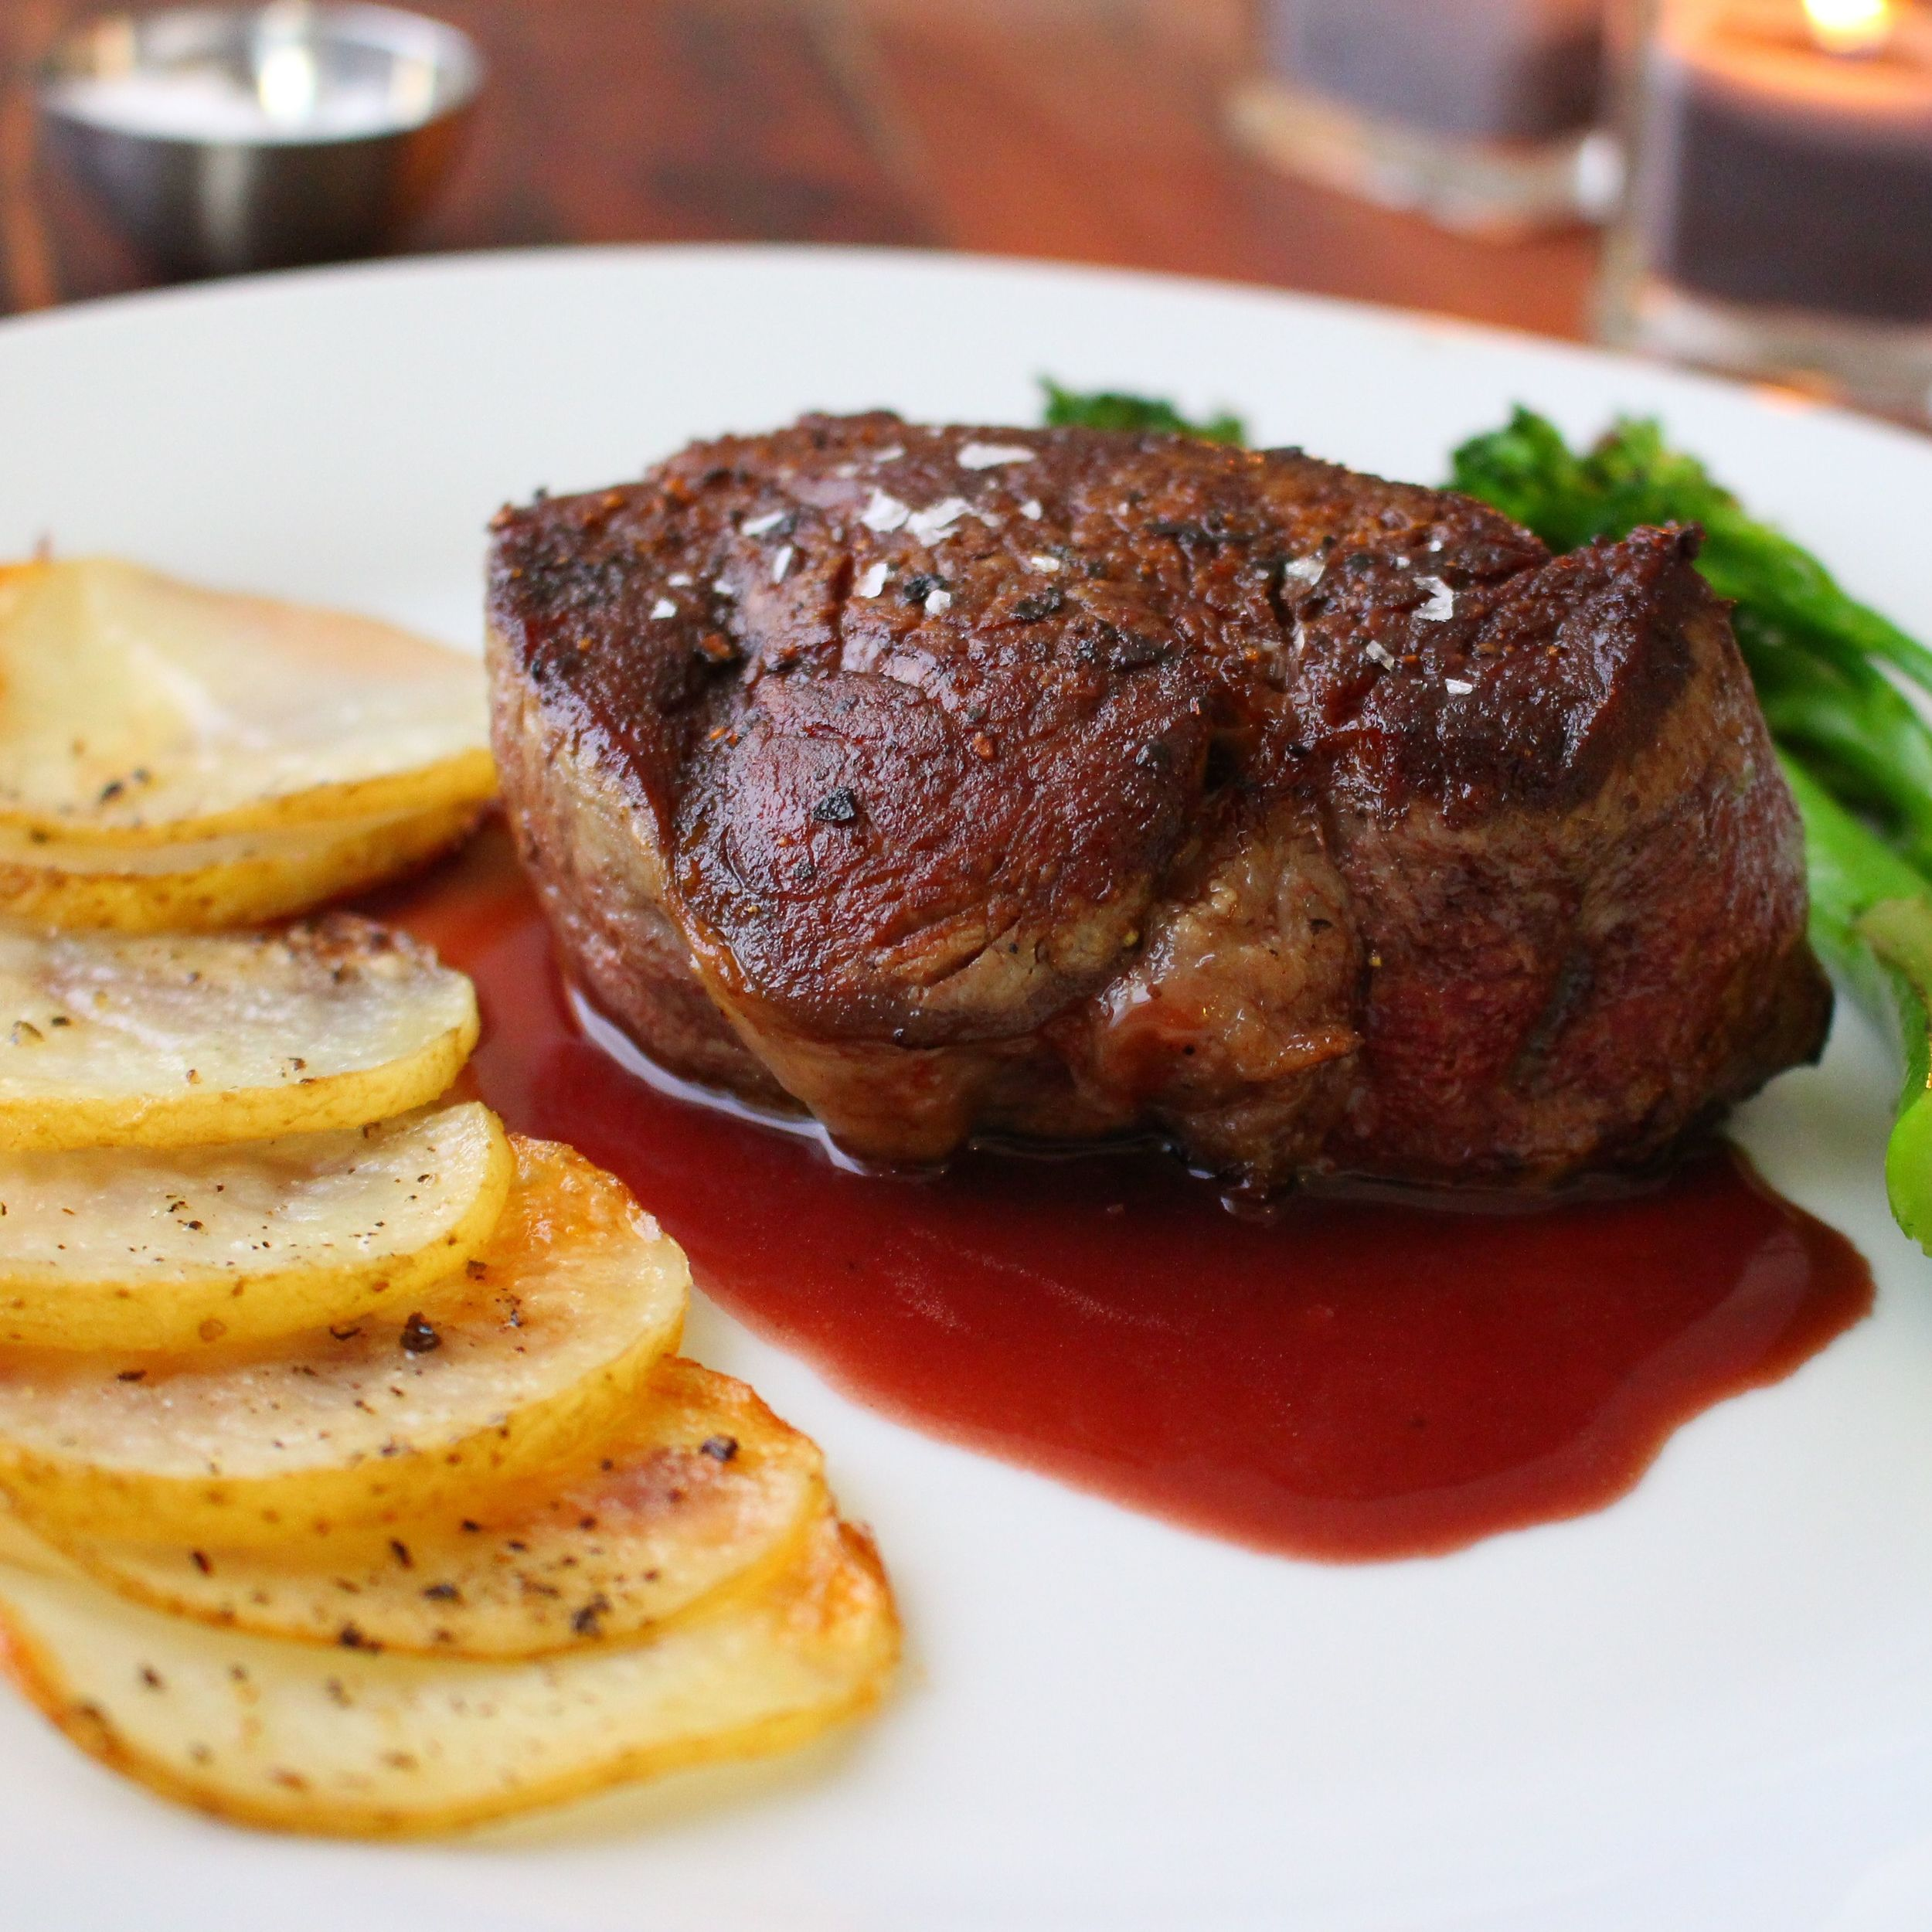 Filet mignon, red wine reduction, potatoes and broccolini